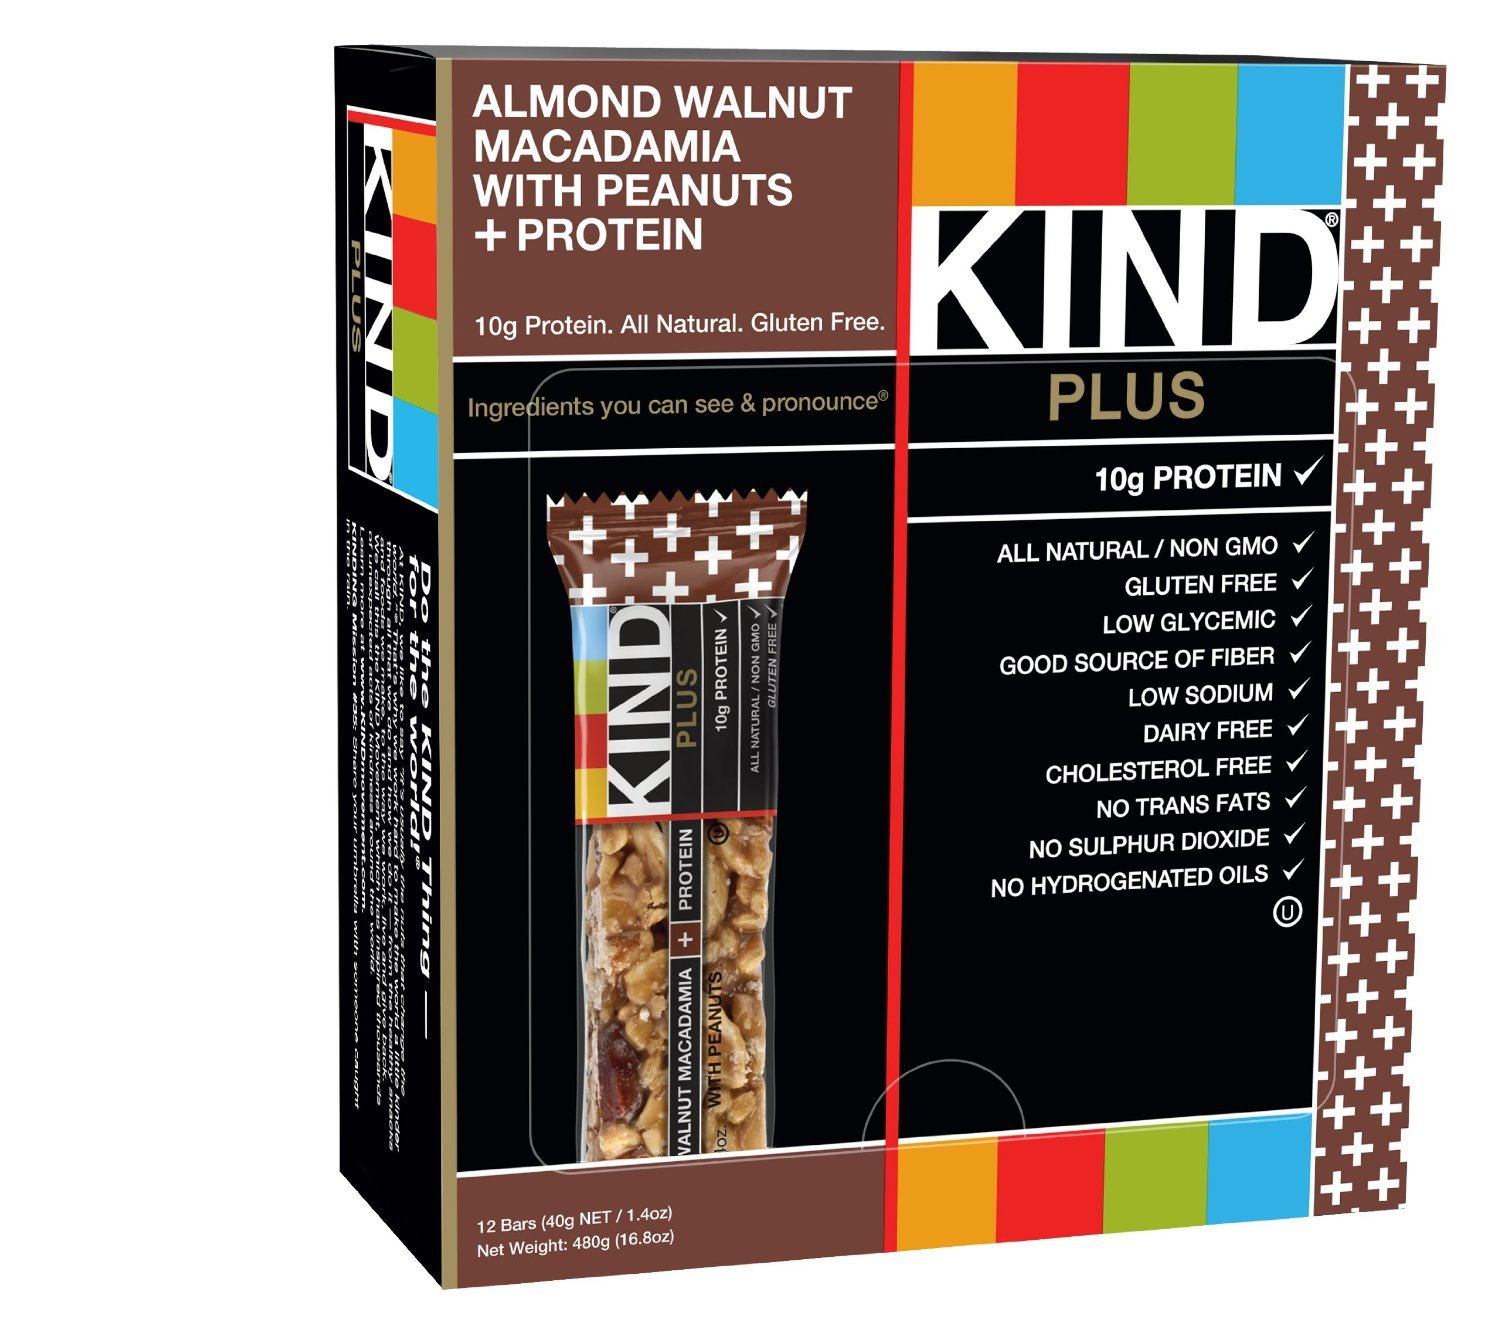 Kind Fruit & Nut Bars Bar Almnd Wlnt & Macadmia 1.4 Oz by KIND (Image #1)